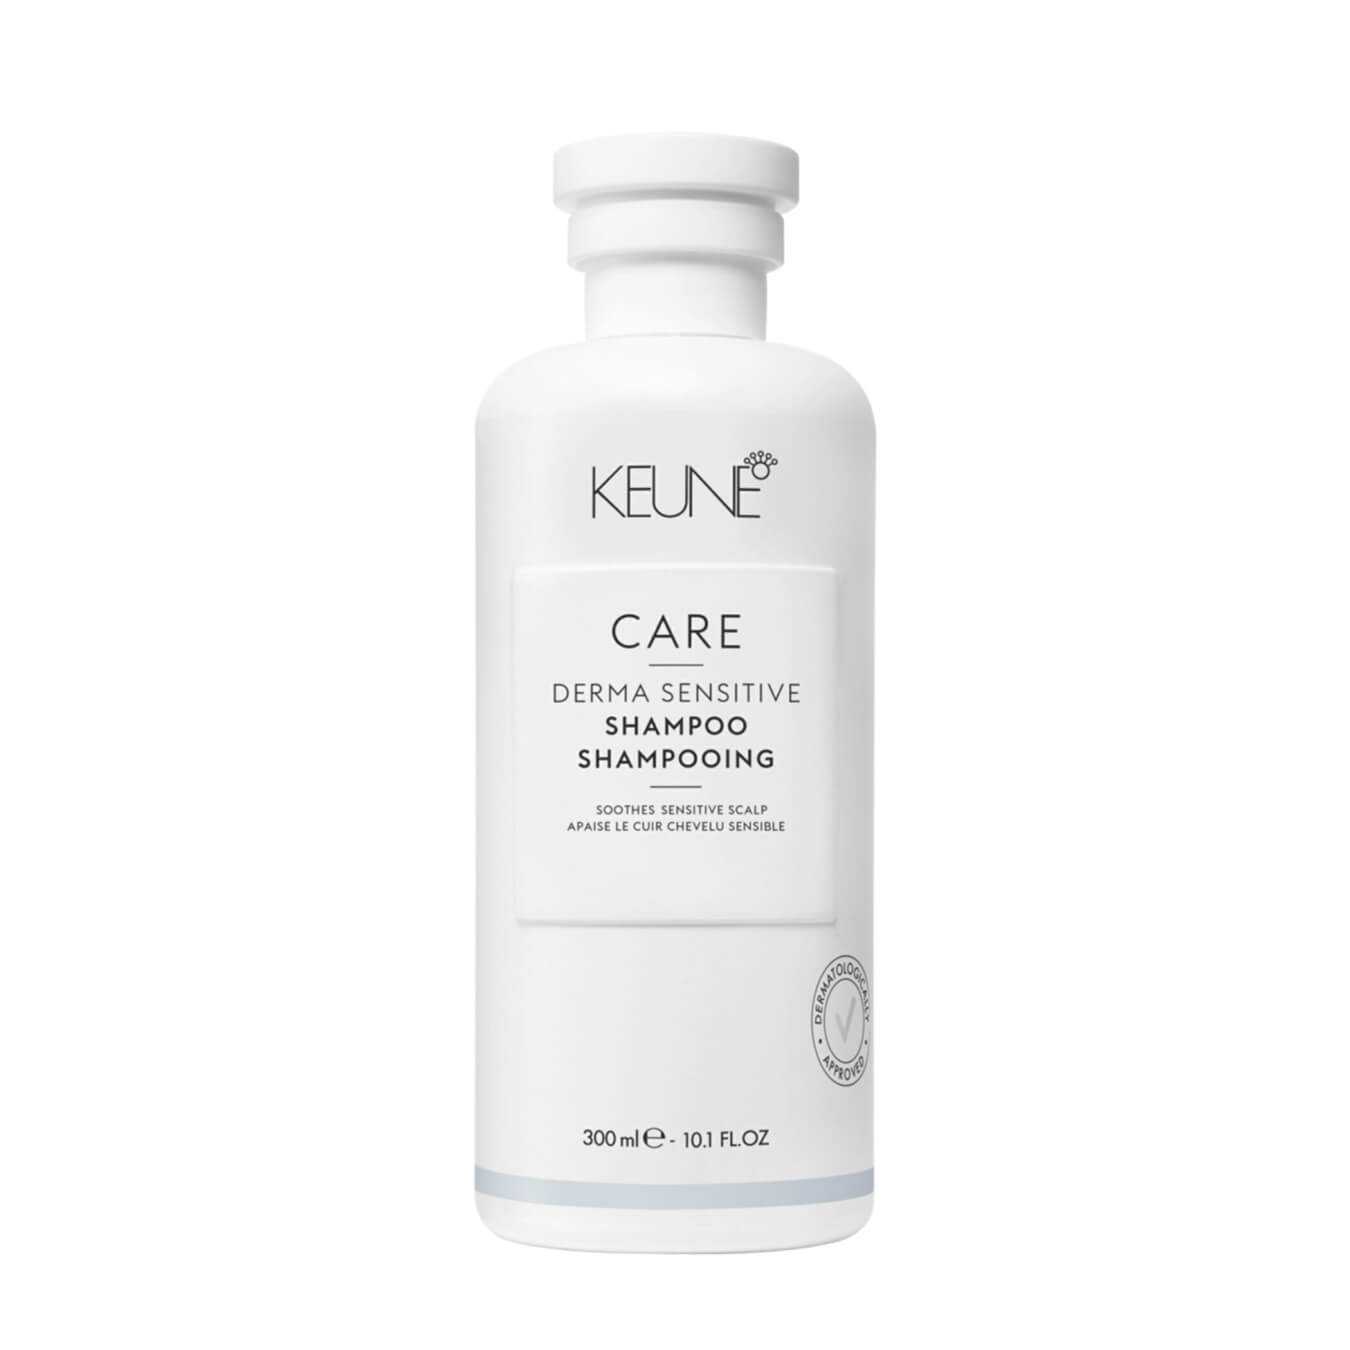 Koop Keune Care Derma Sensitive Shampoo 300ml